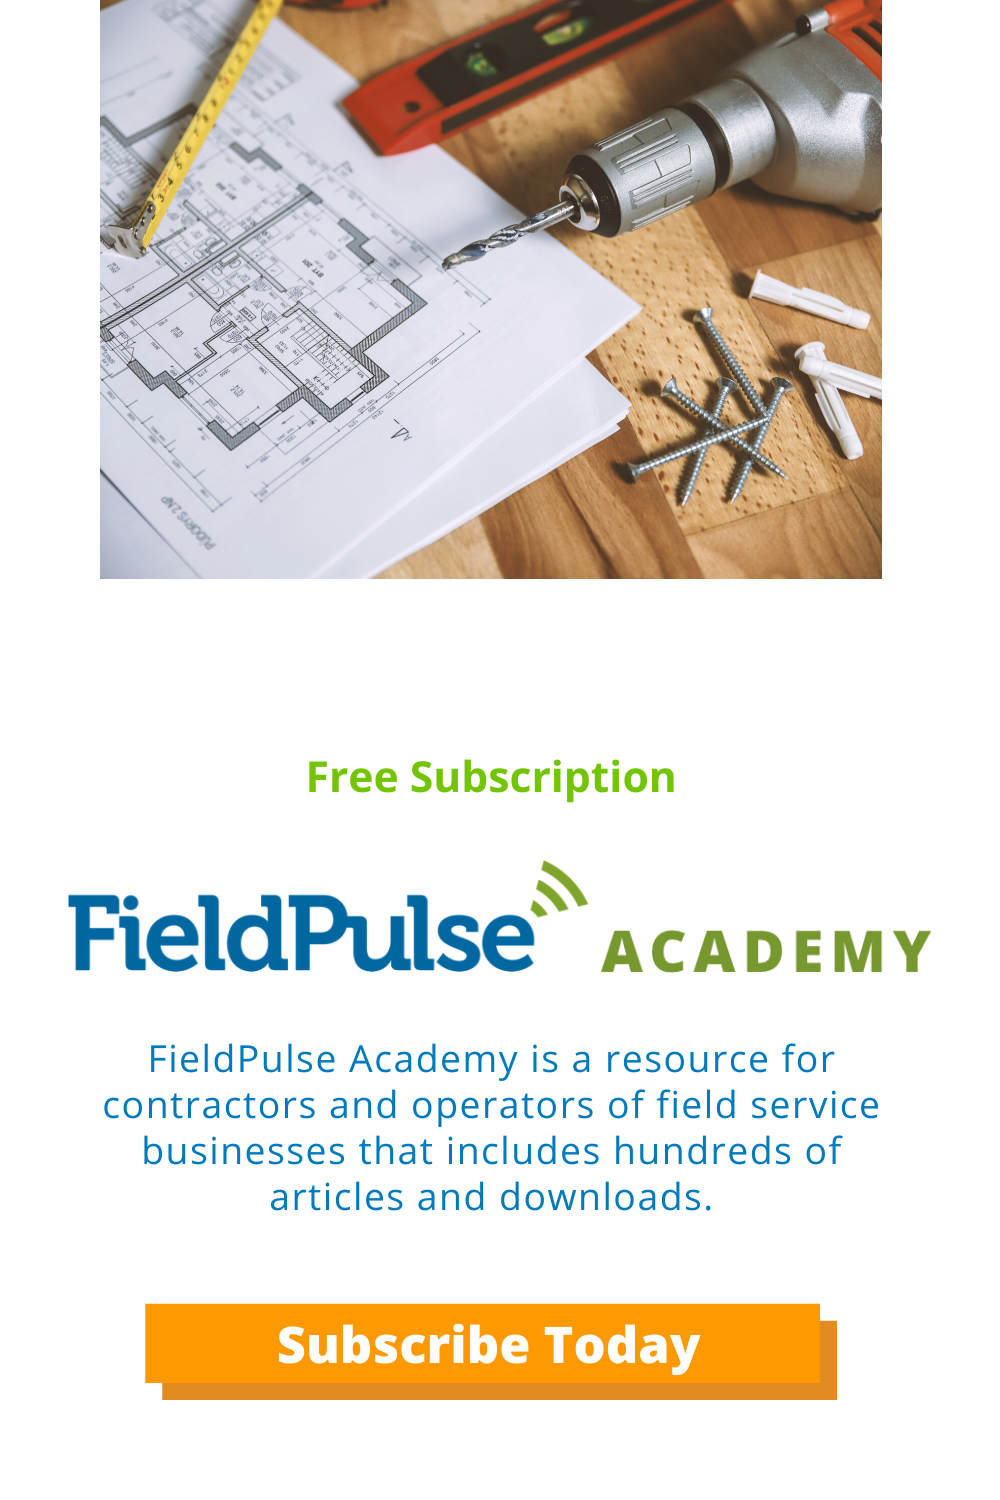 Fieldpulse Academy Makes Your Service Business Better Subscribe